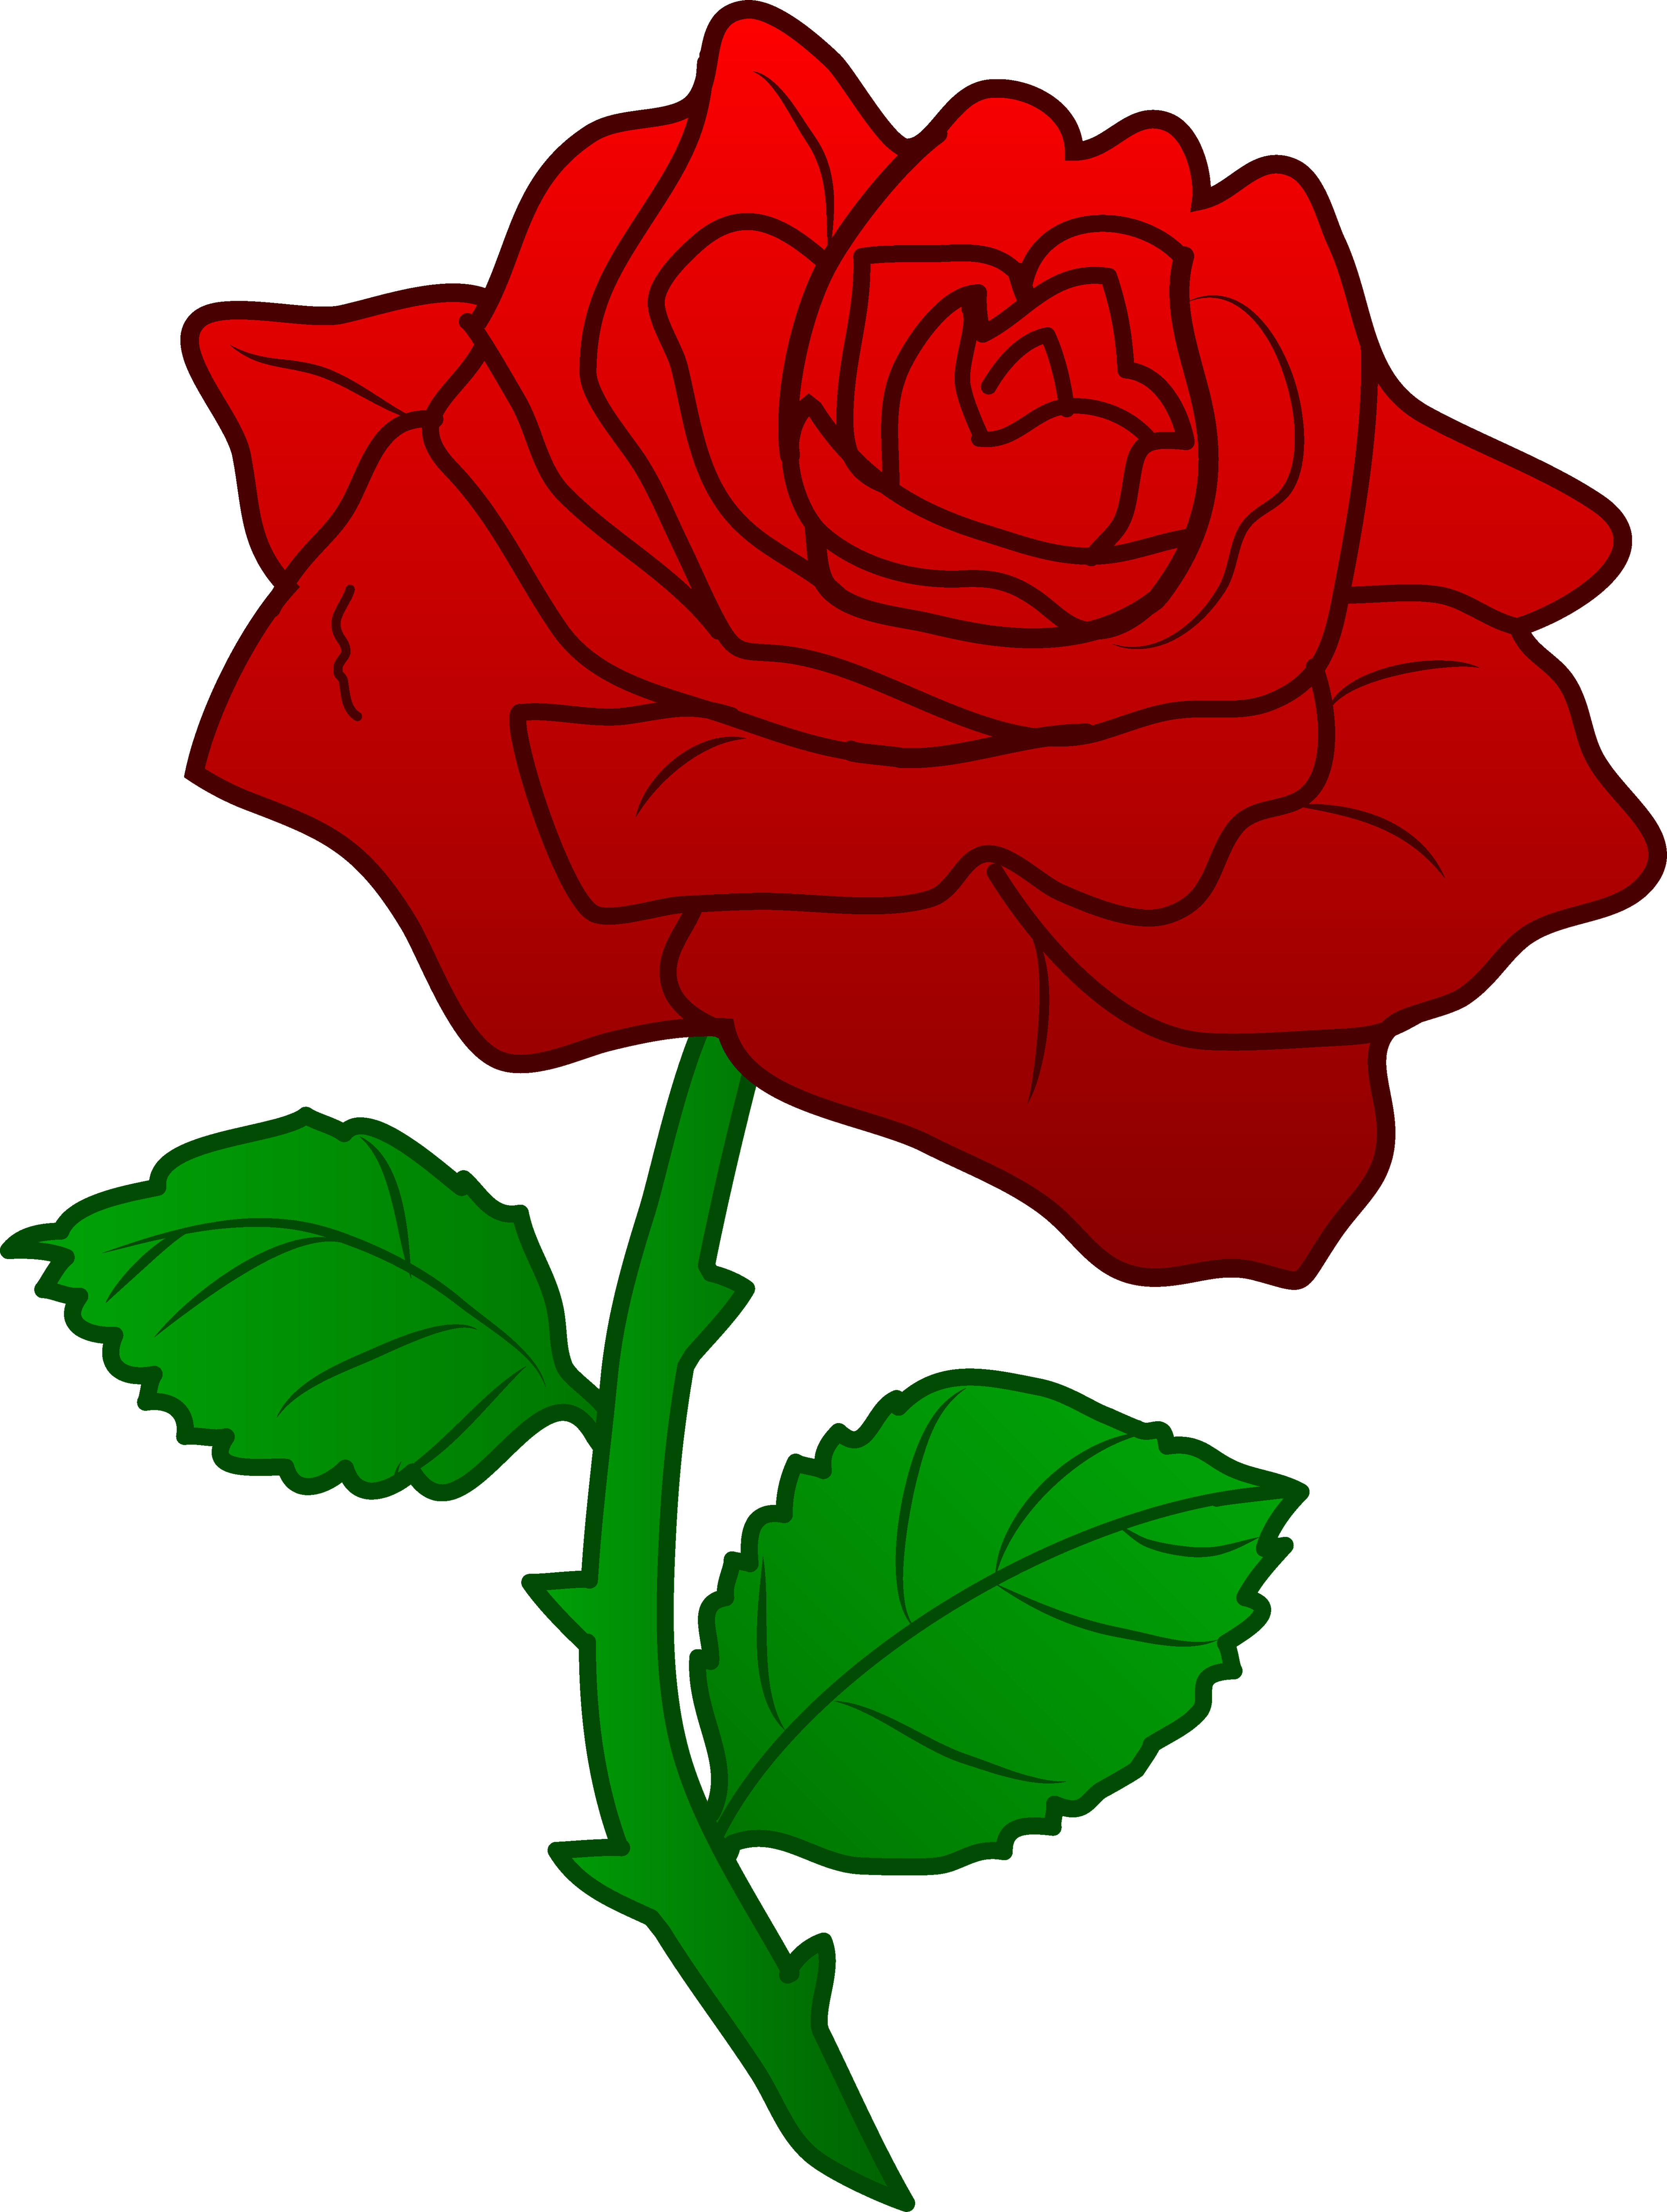 ... Image Clipart Rose Clipart - Free To-... Image Clipart Rose Clipart - Free to use Clip Art Resource ...-8